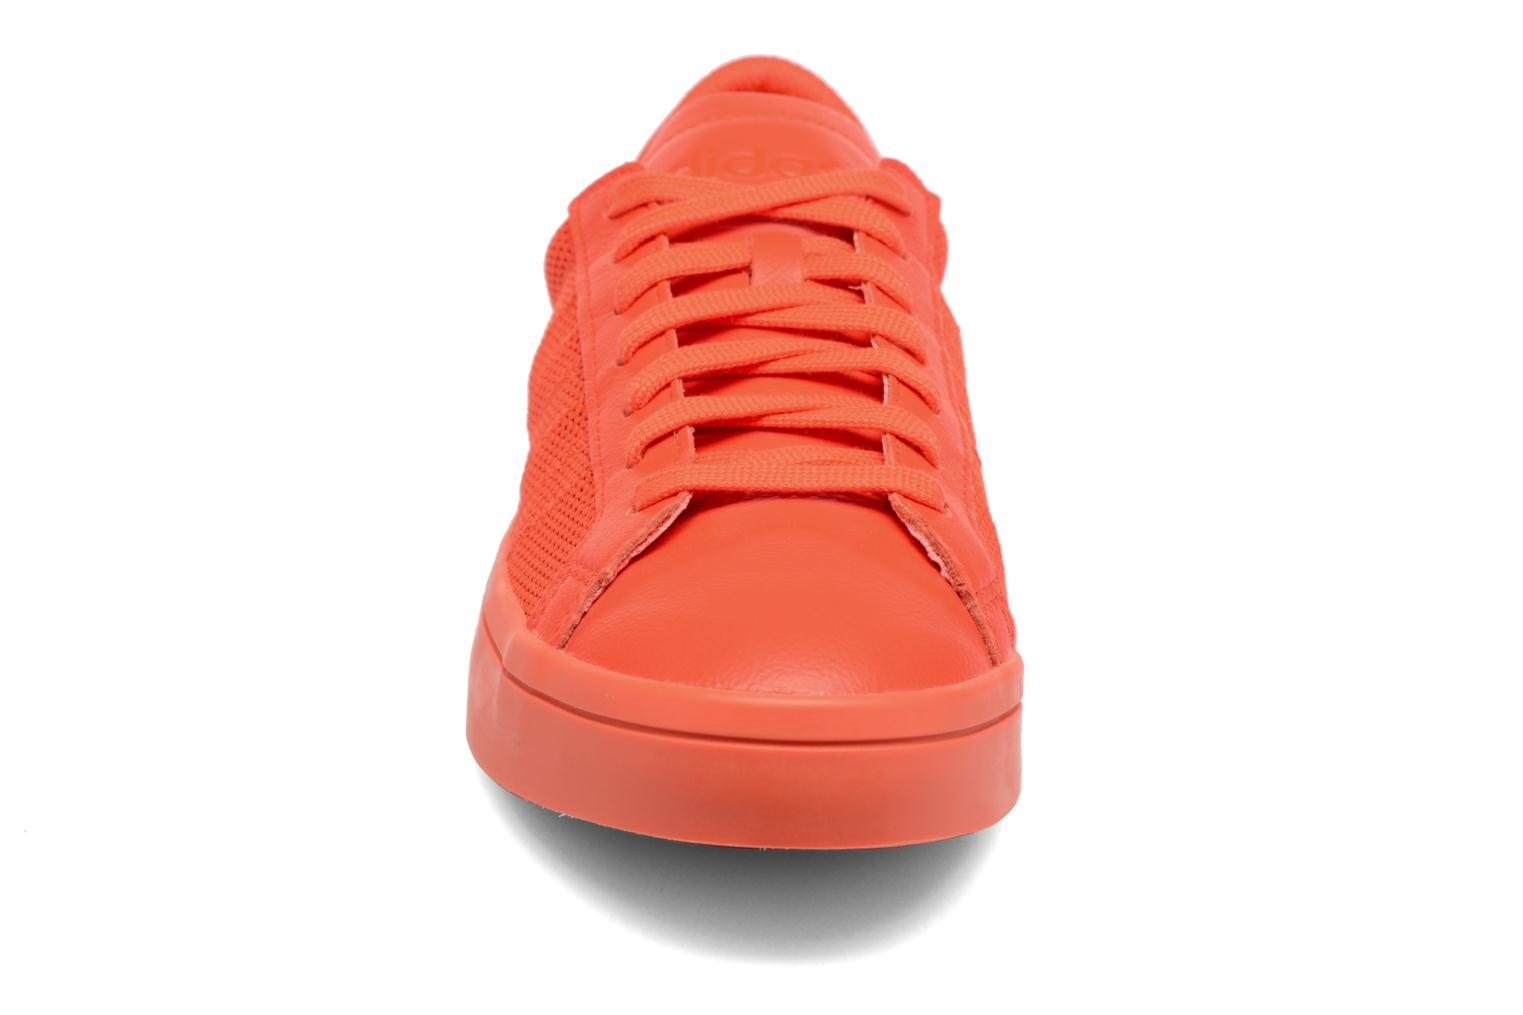 SOLBRI/SOLBRI/SOLBRI Adidas Originals Court Vantage H (Orange)